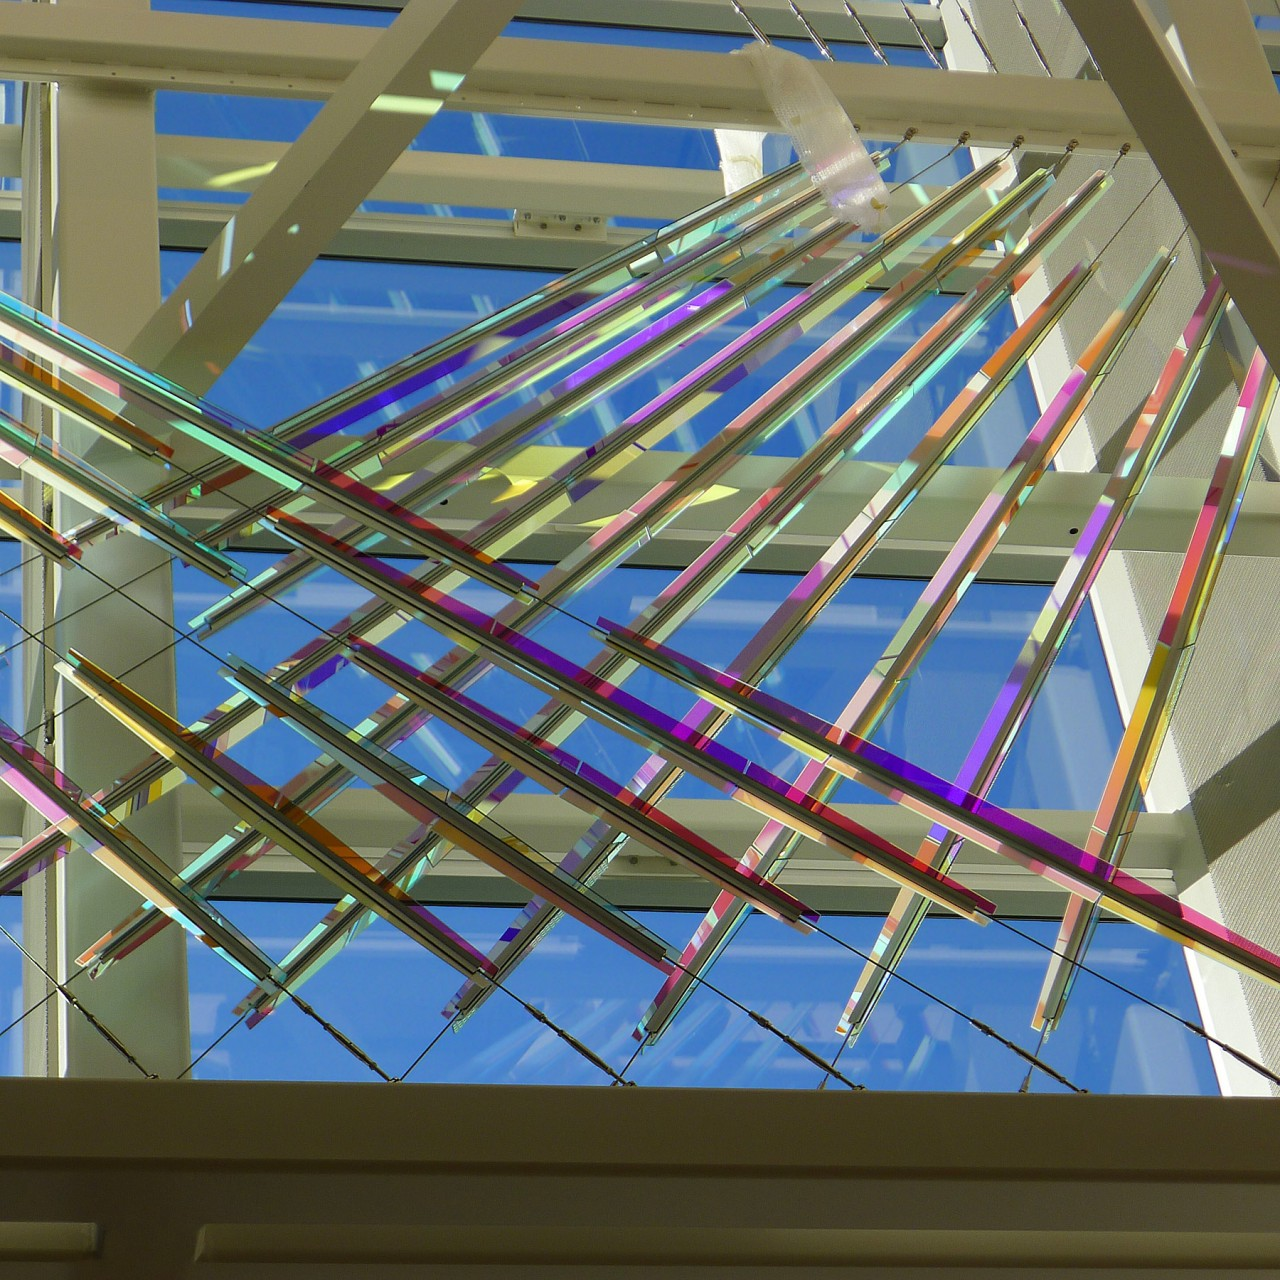 Ed Carpenter's McCarran airport skylight art cable-mounted glass panels - This sculpture spans three levels and consists of a main component at the west curtain wall. / image 8